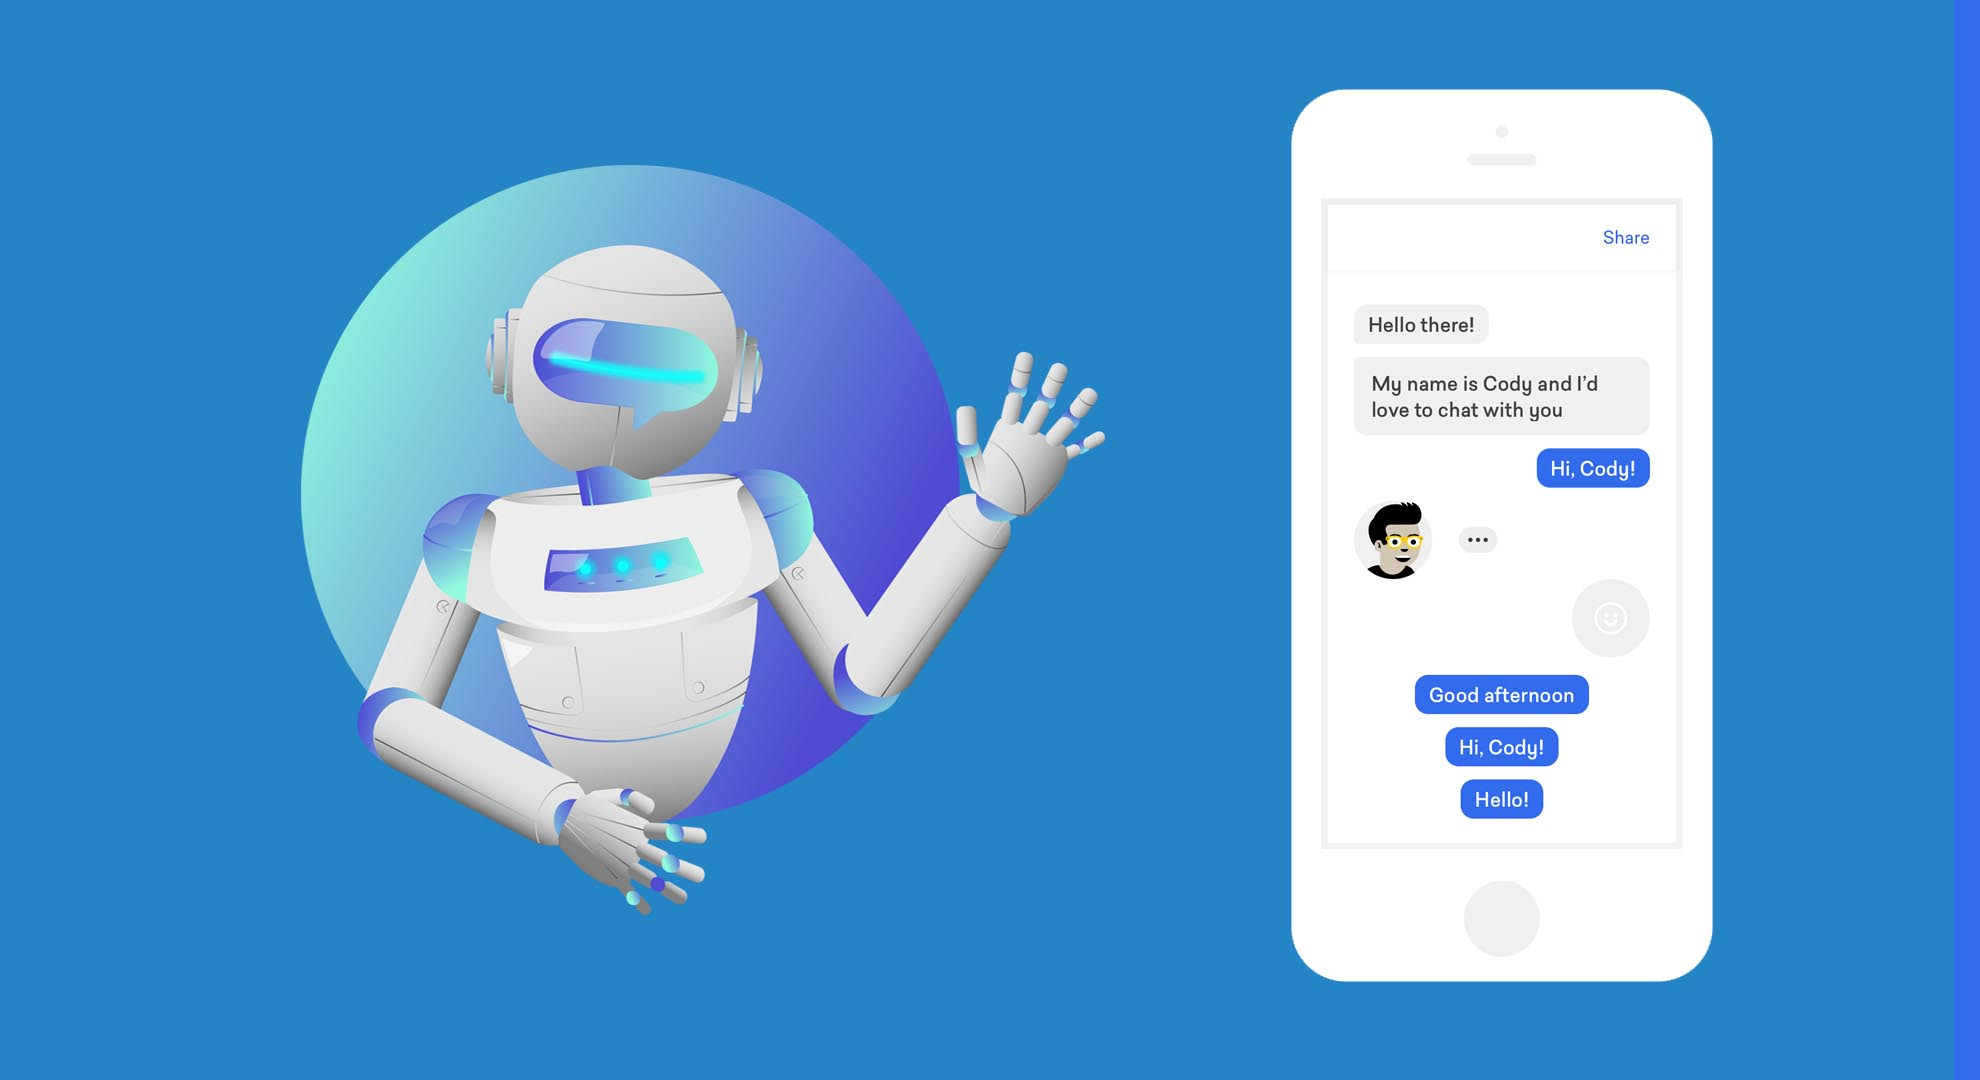 Top 10 Chatbot Development Companies You Can Hire - IQVIS Inc.